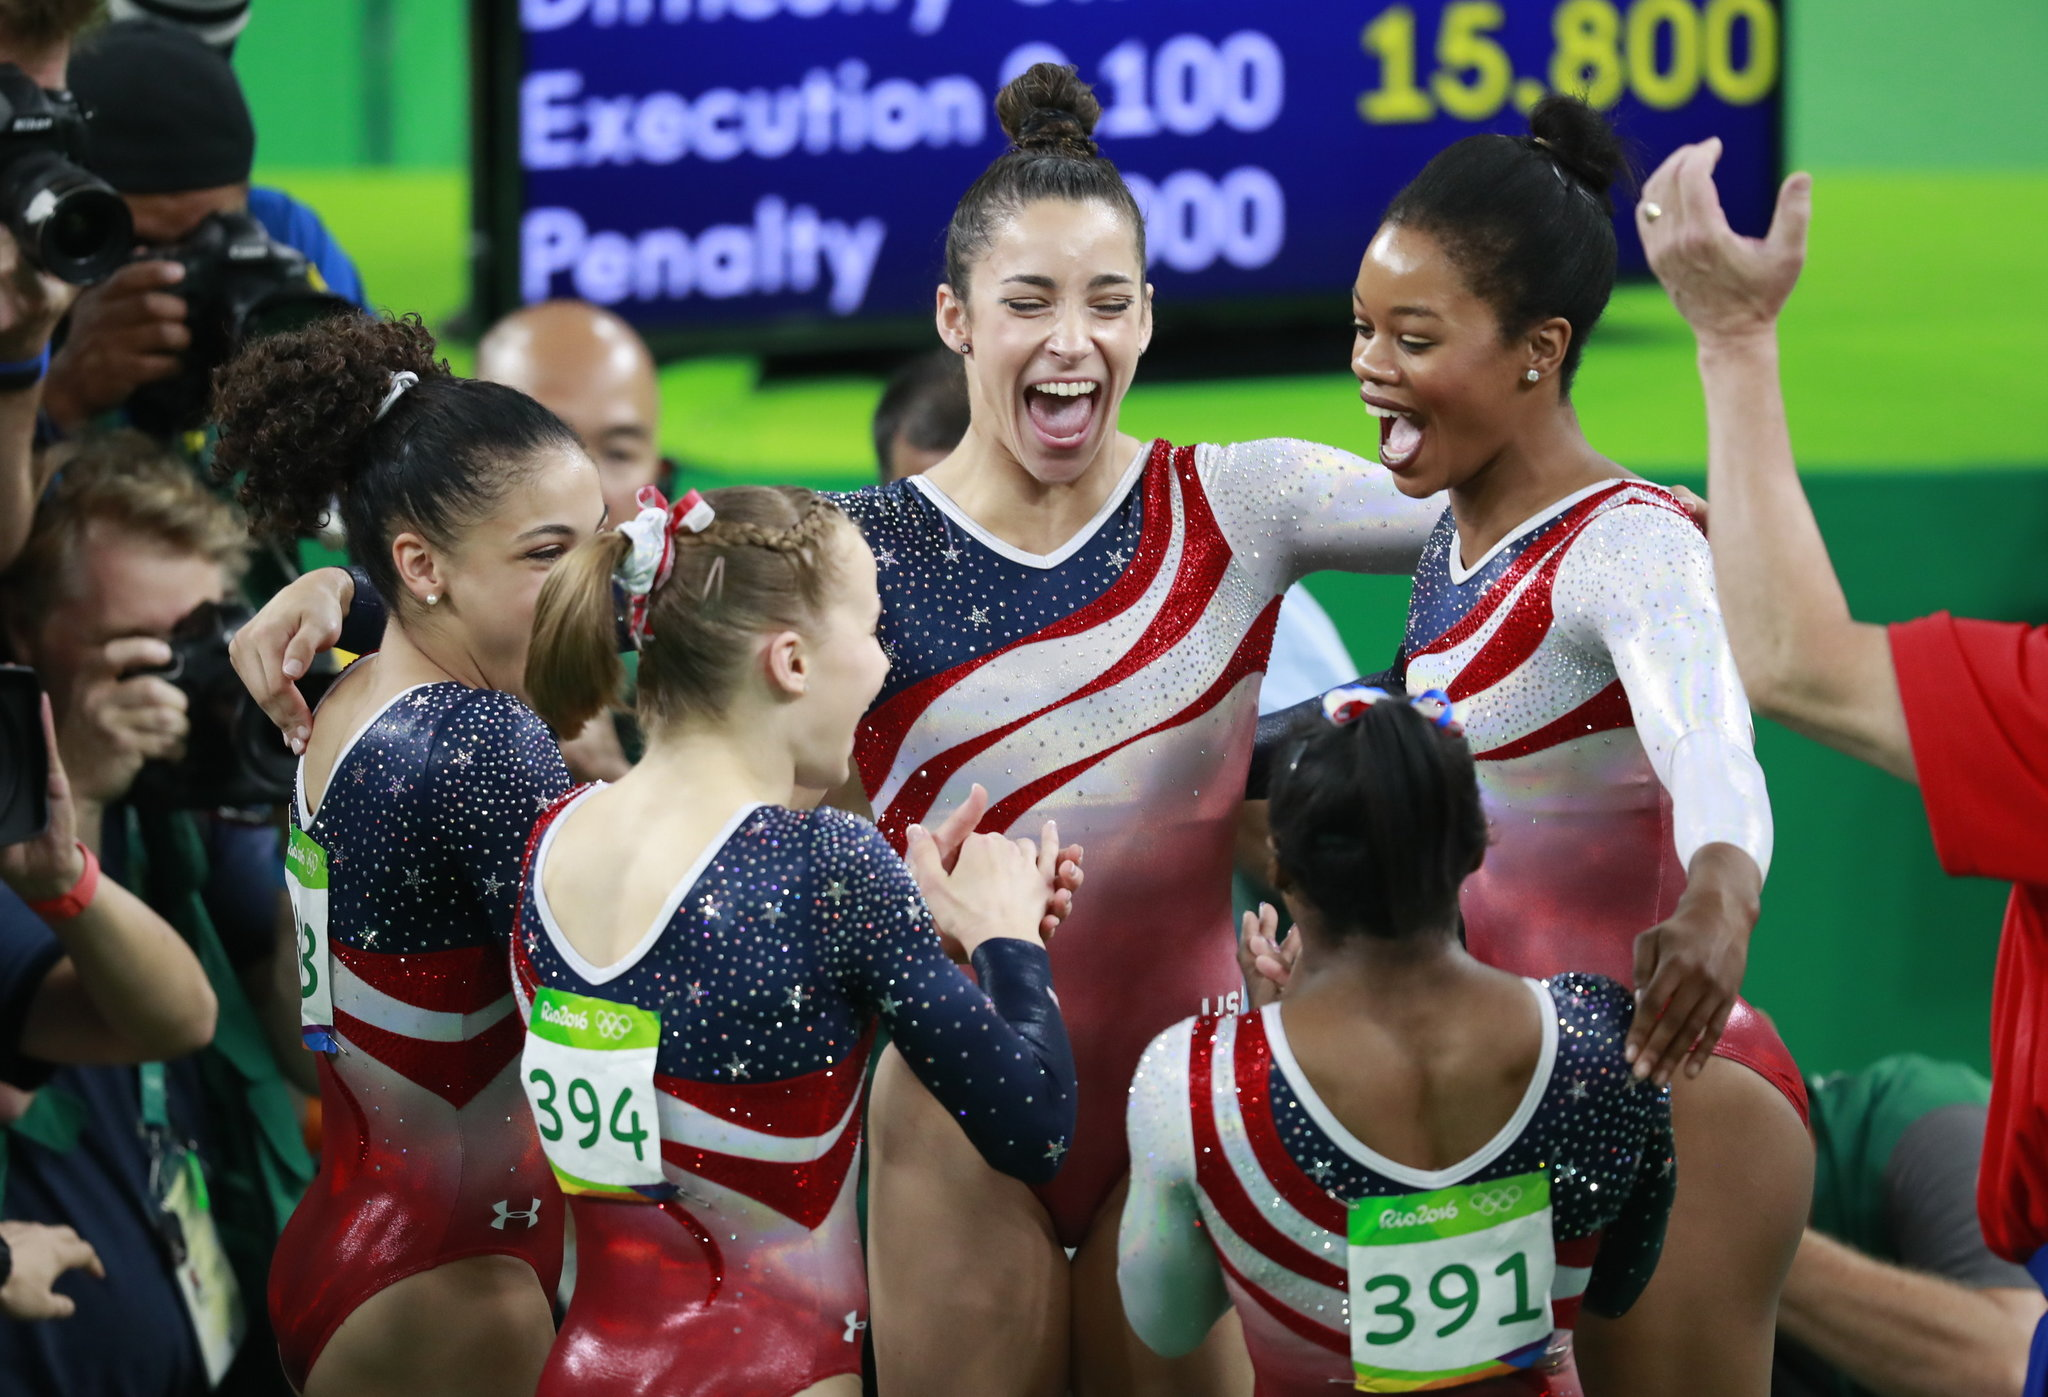 Lawsuits force USA Gymnastics to file for Bankruptcy